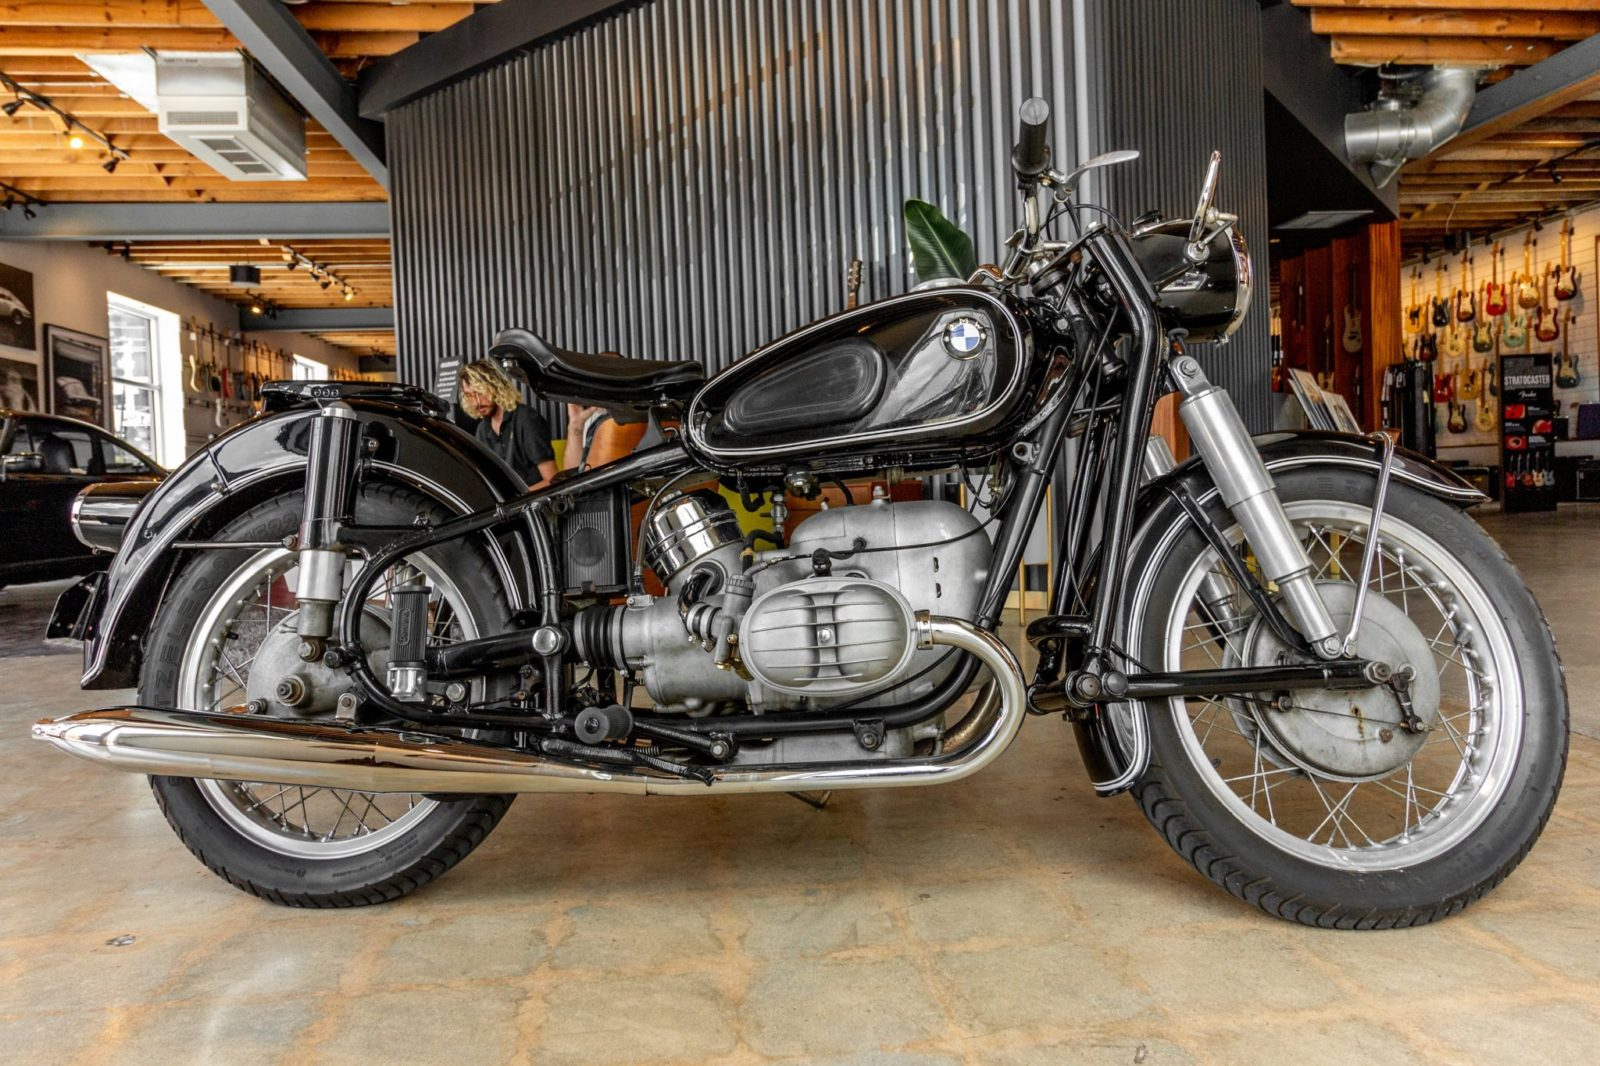 elevate-your-riding-experience-with-this-numbers-matching-1962-bmw-r50/2